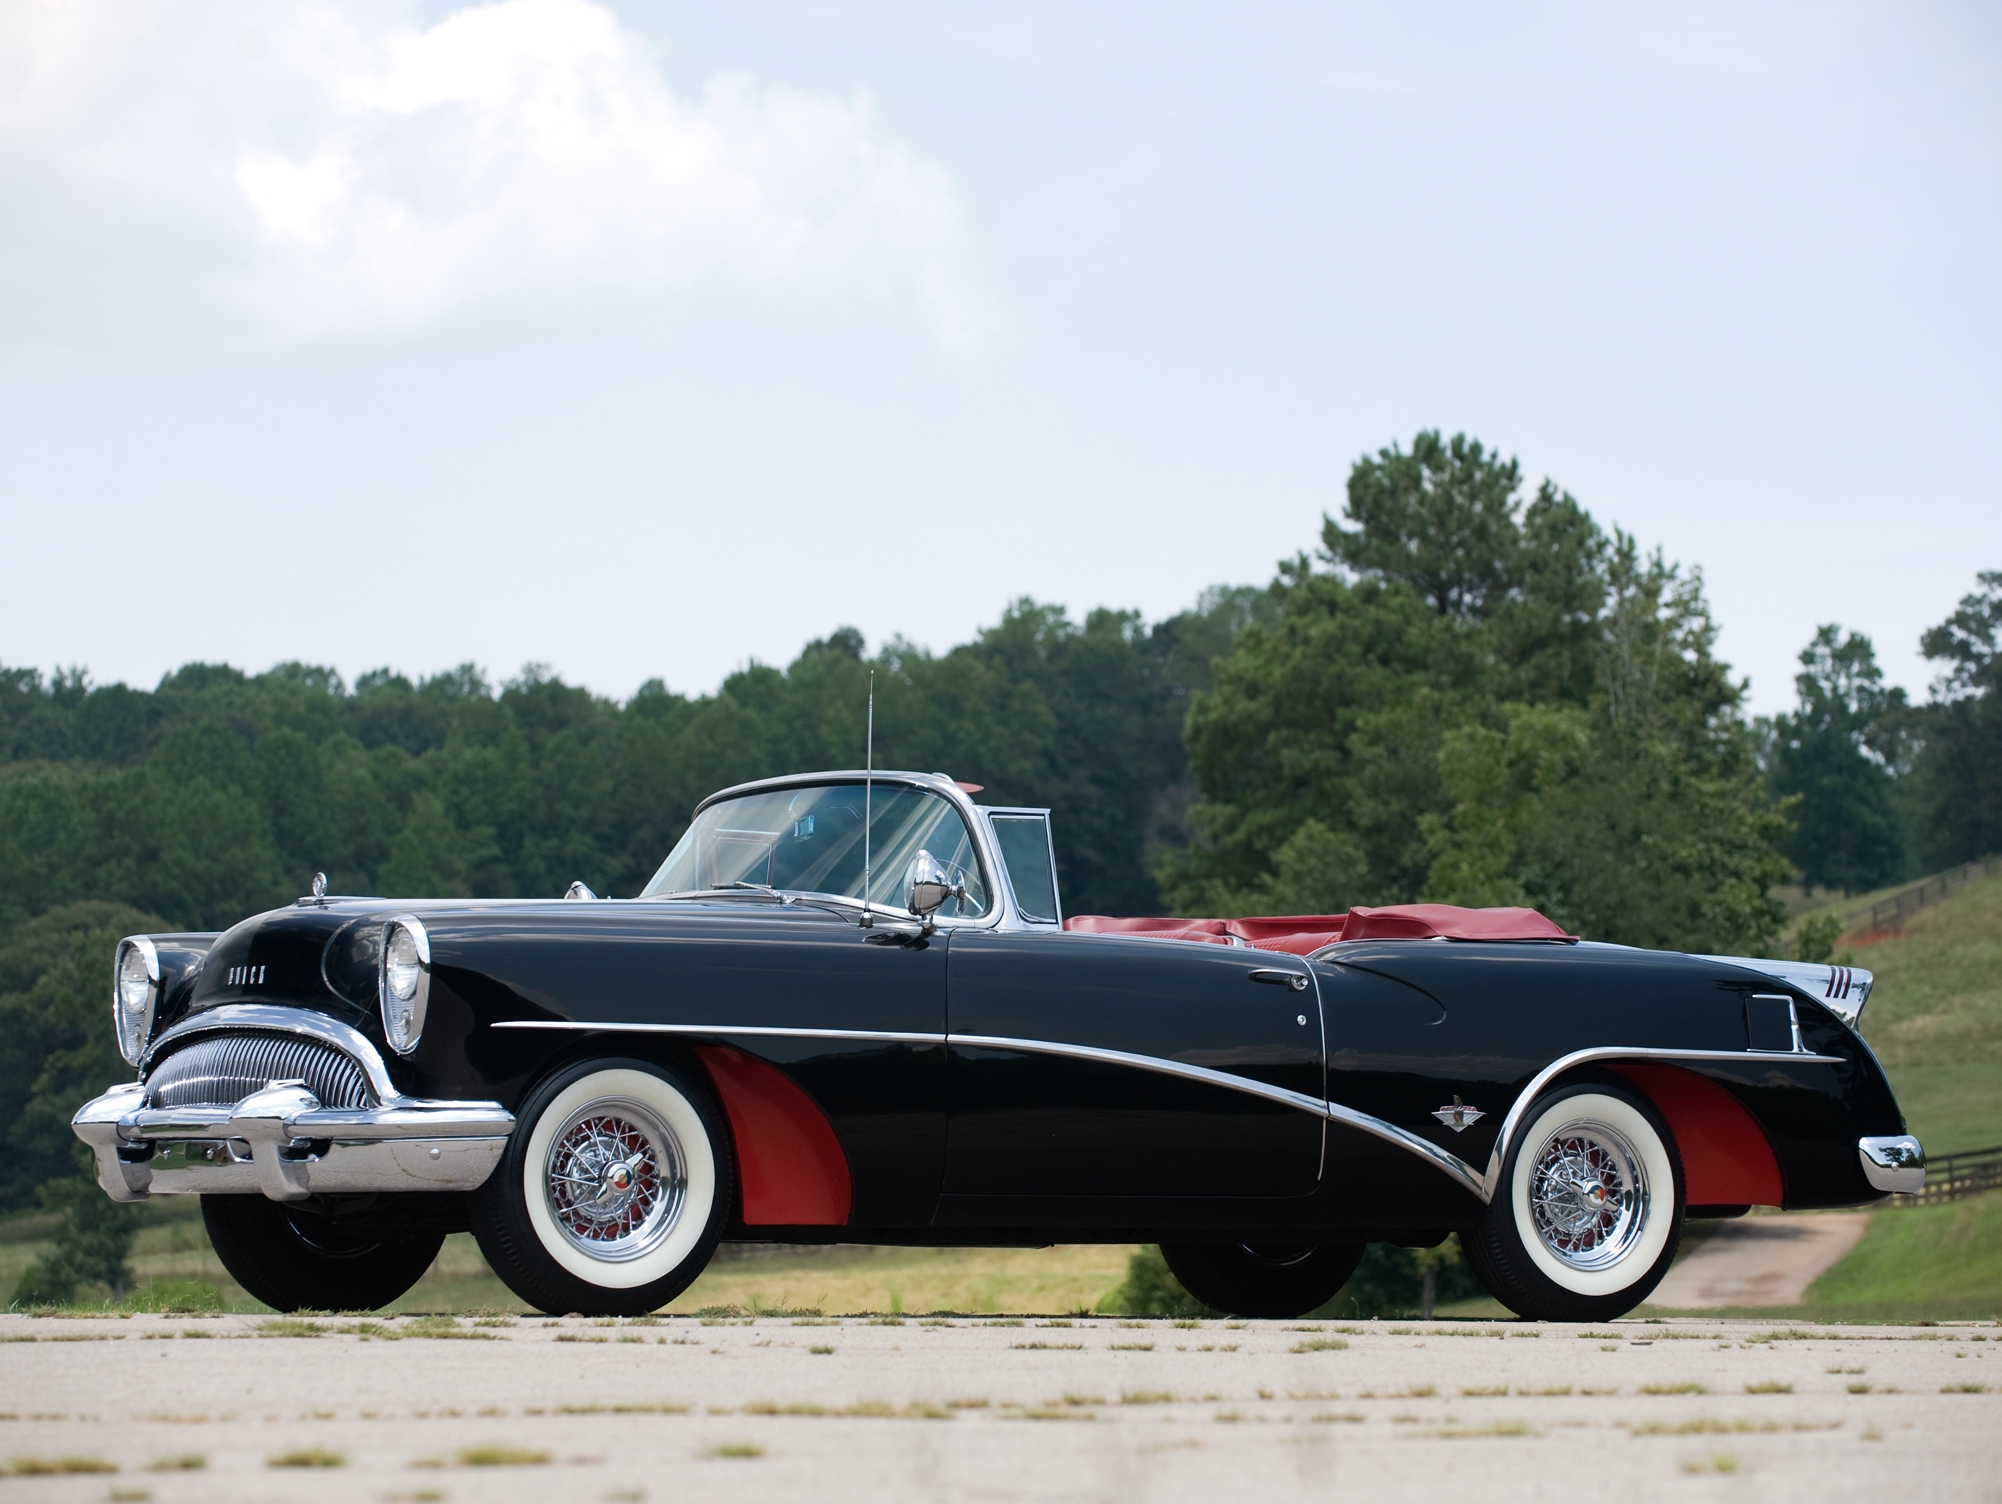 Vehicles - 1953 Buick Skylark Convertible Coupe Wallpaper